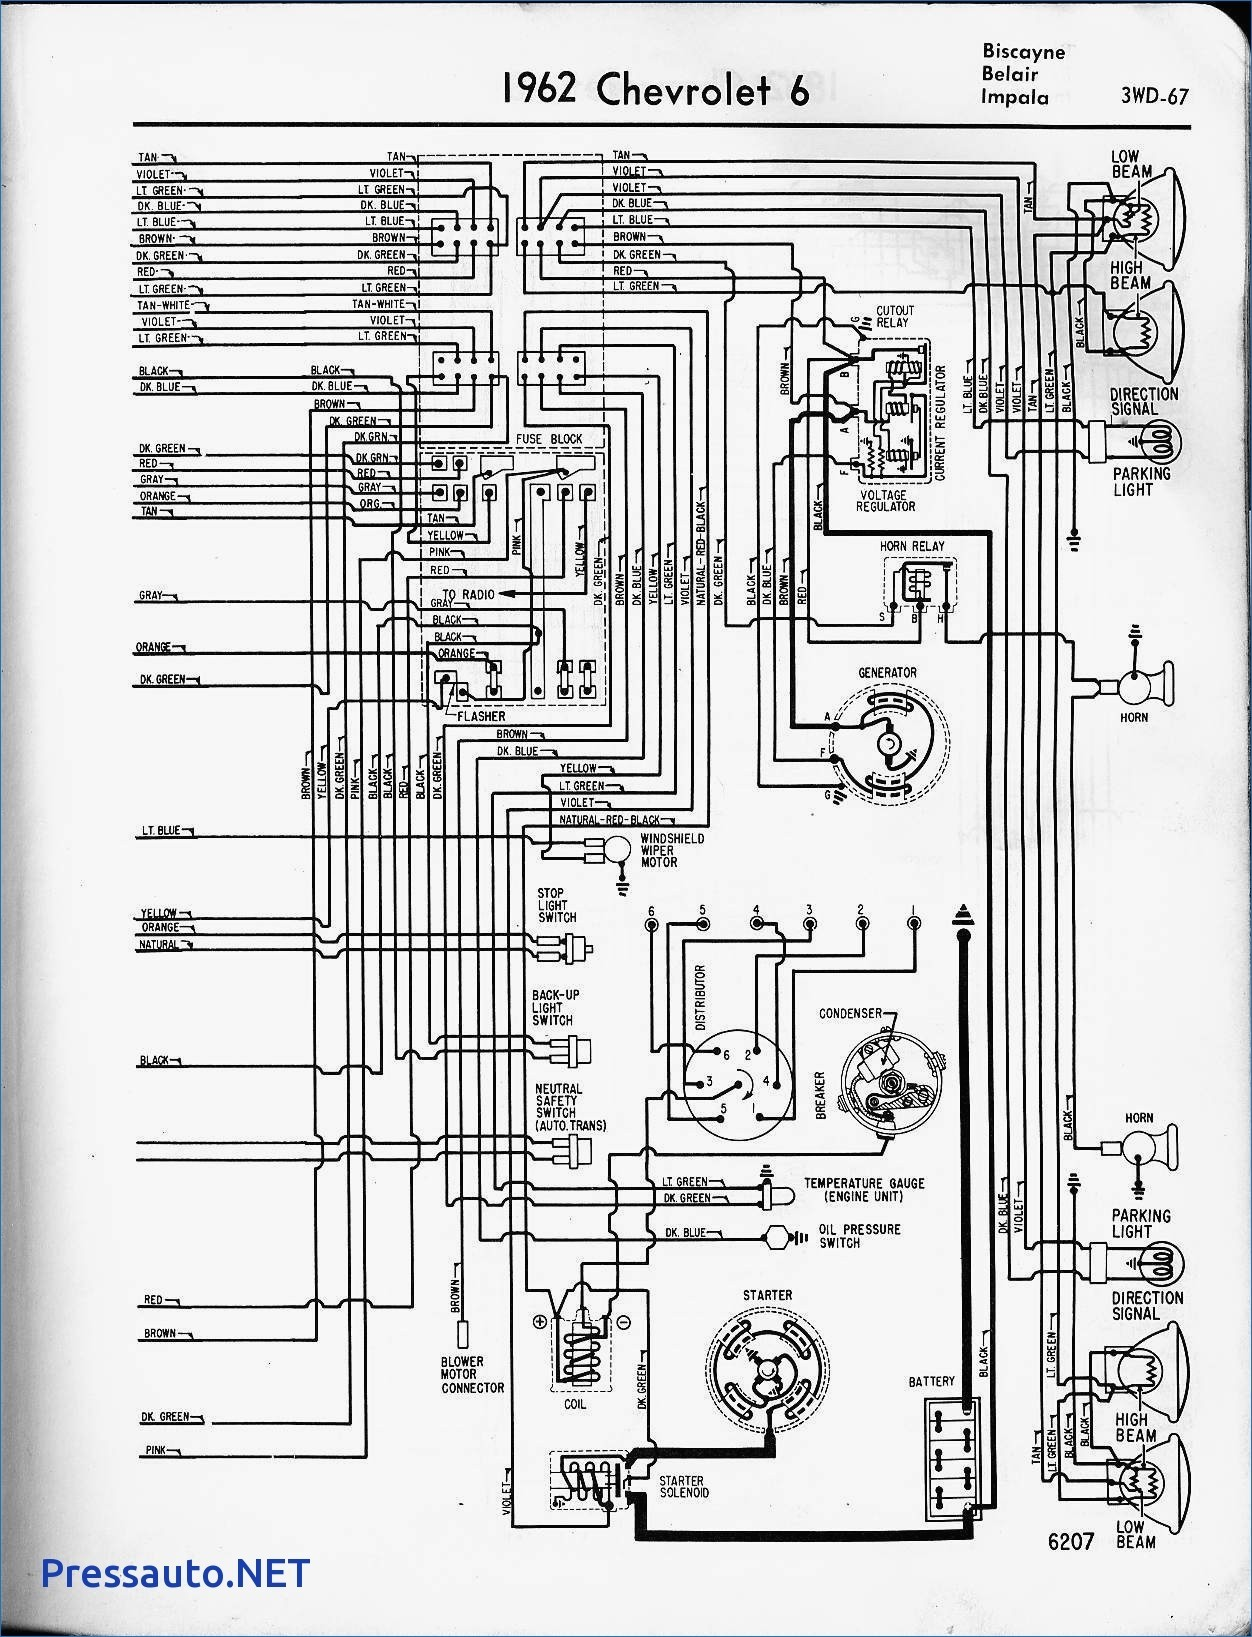 1966 Impala Wiring Diagram Schematics Diagrams 2009 Jeep Patriot Fuse Box 1962 Underhood Block And Schematic U2022 Rh Lazysupply Co Chevy Convertible